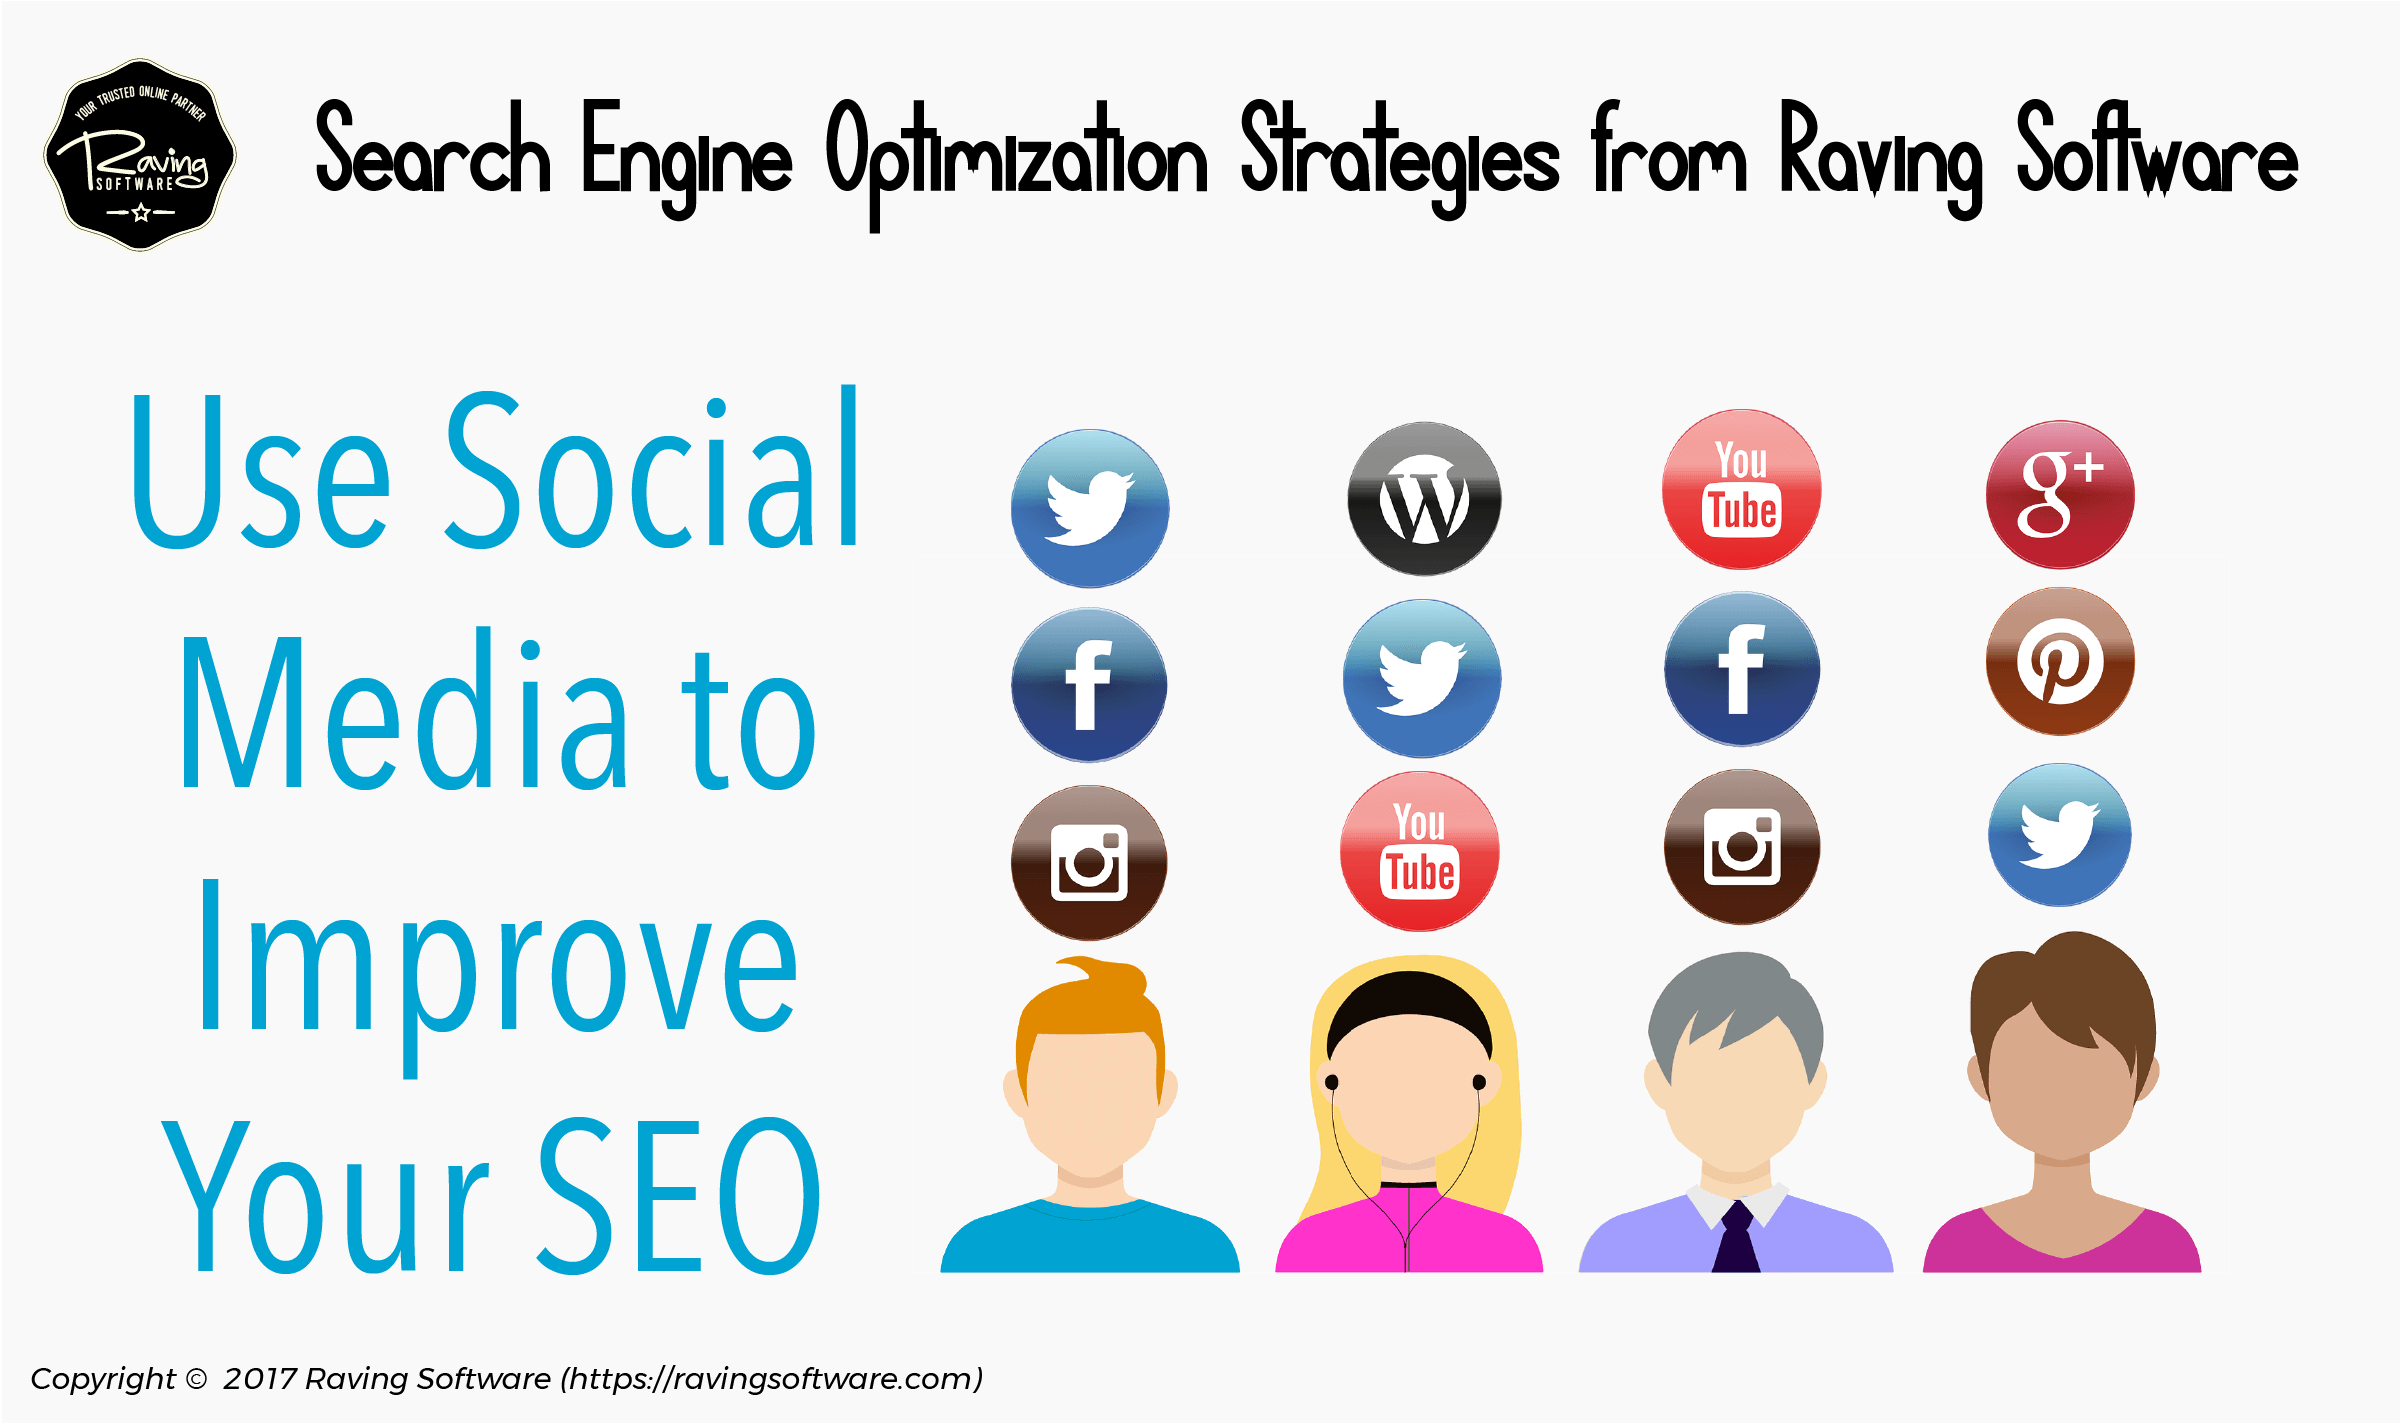 Social media platforms can improve your SEO ranking